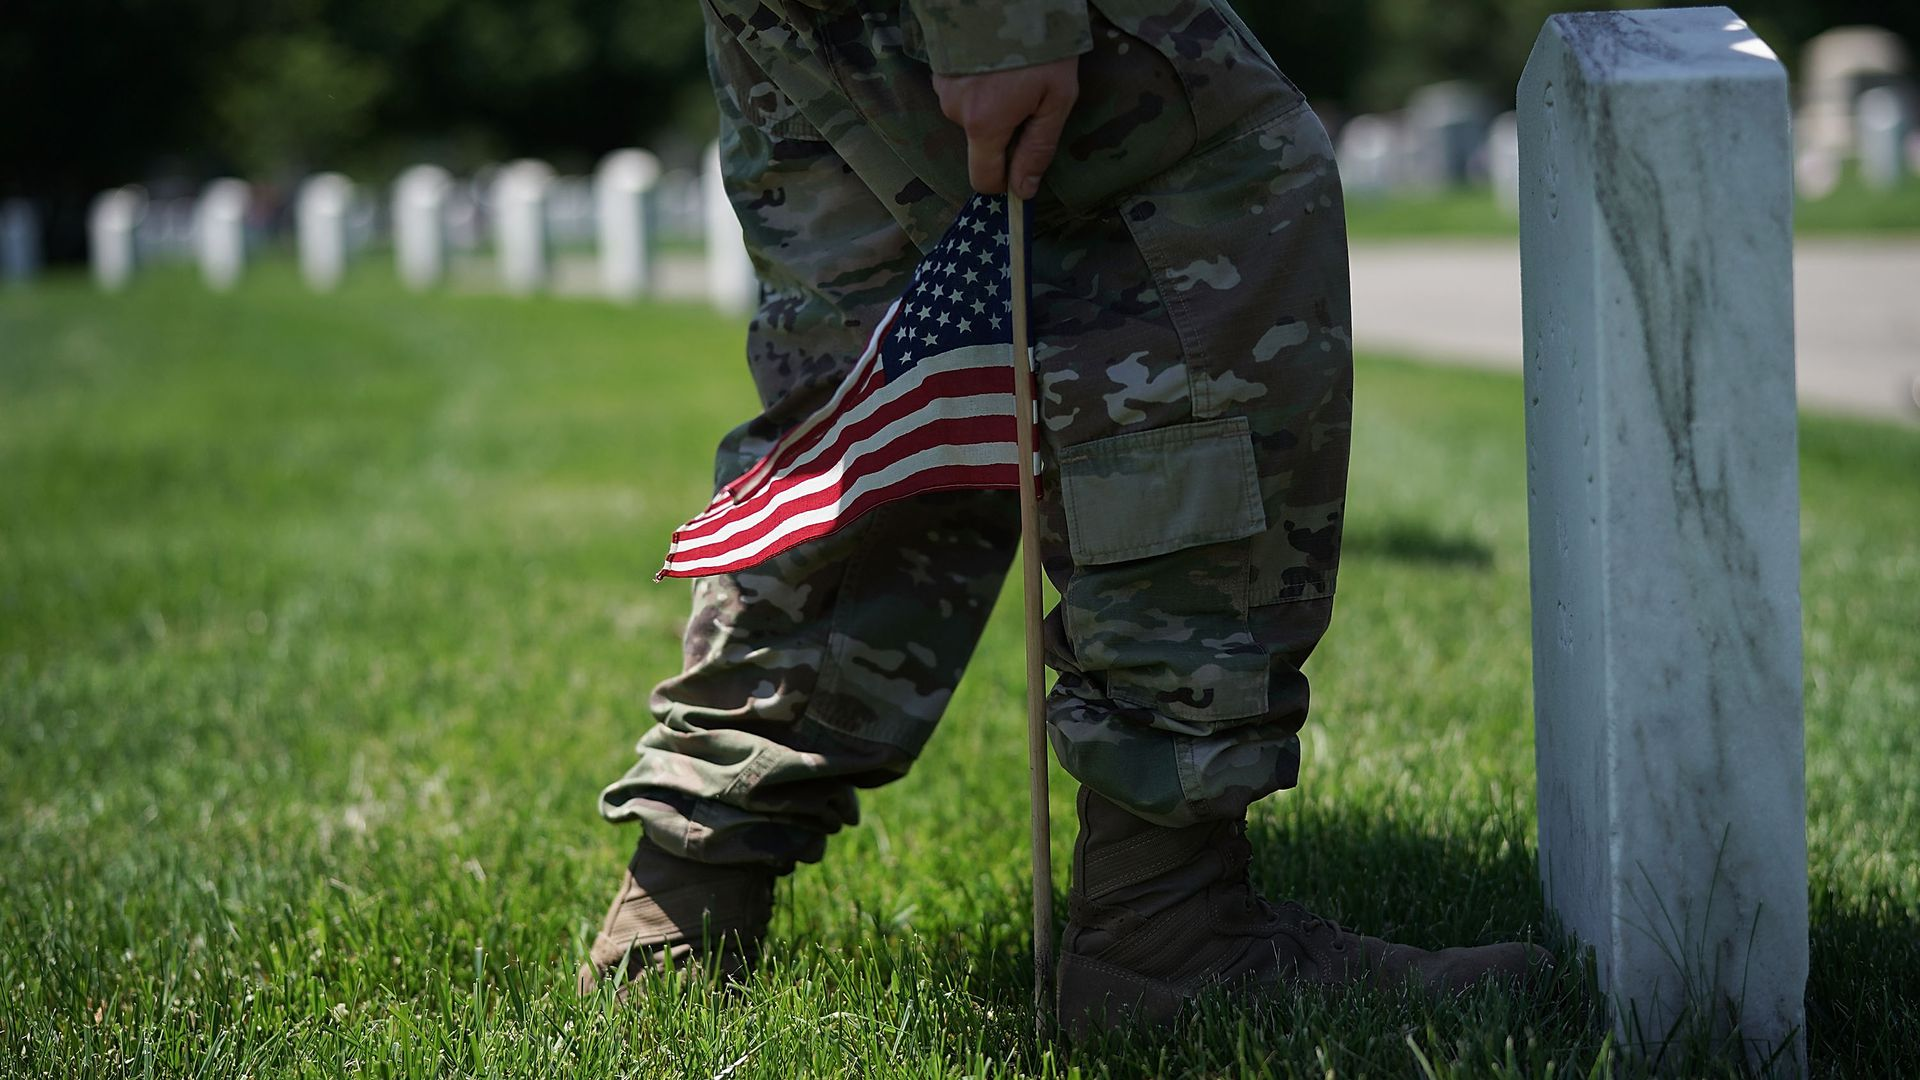 A soldier puts a small U.S. flag in the ground next to a headstone.